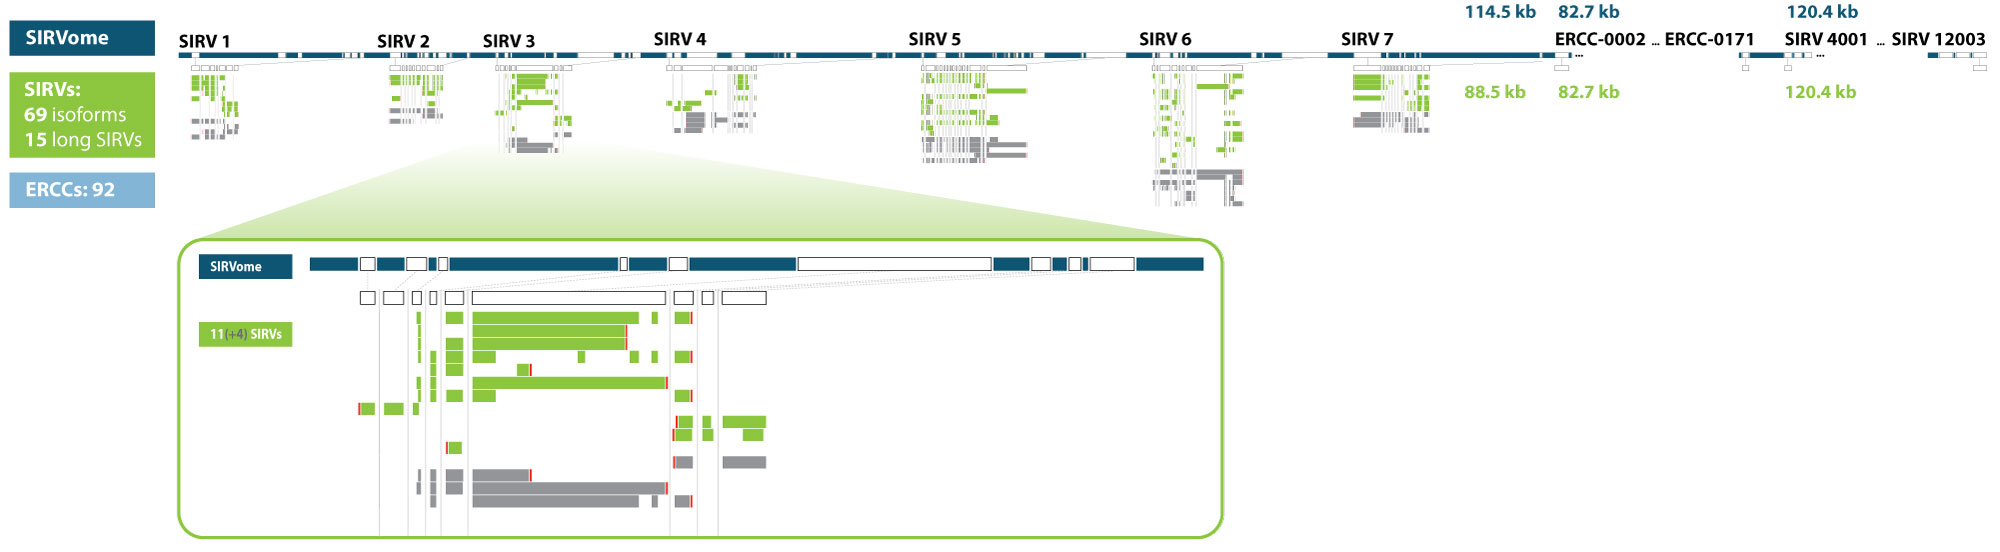 SIRVome-and-SIRV-transcripts